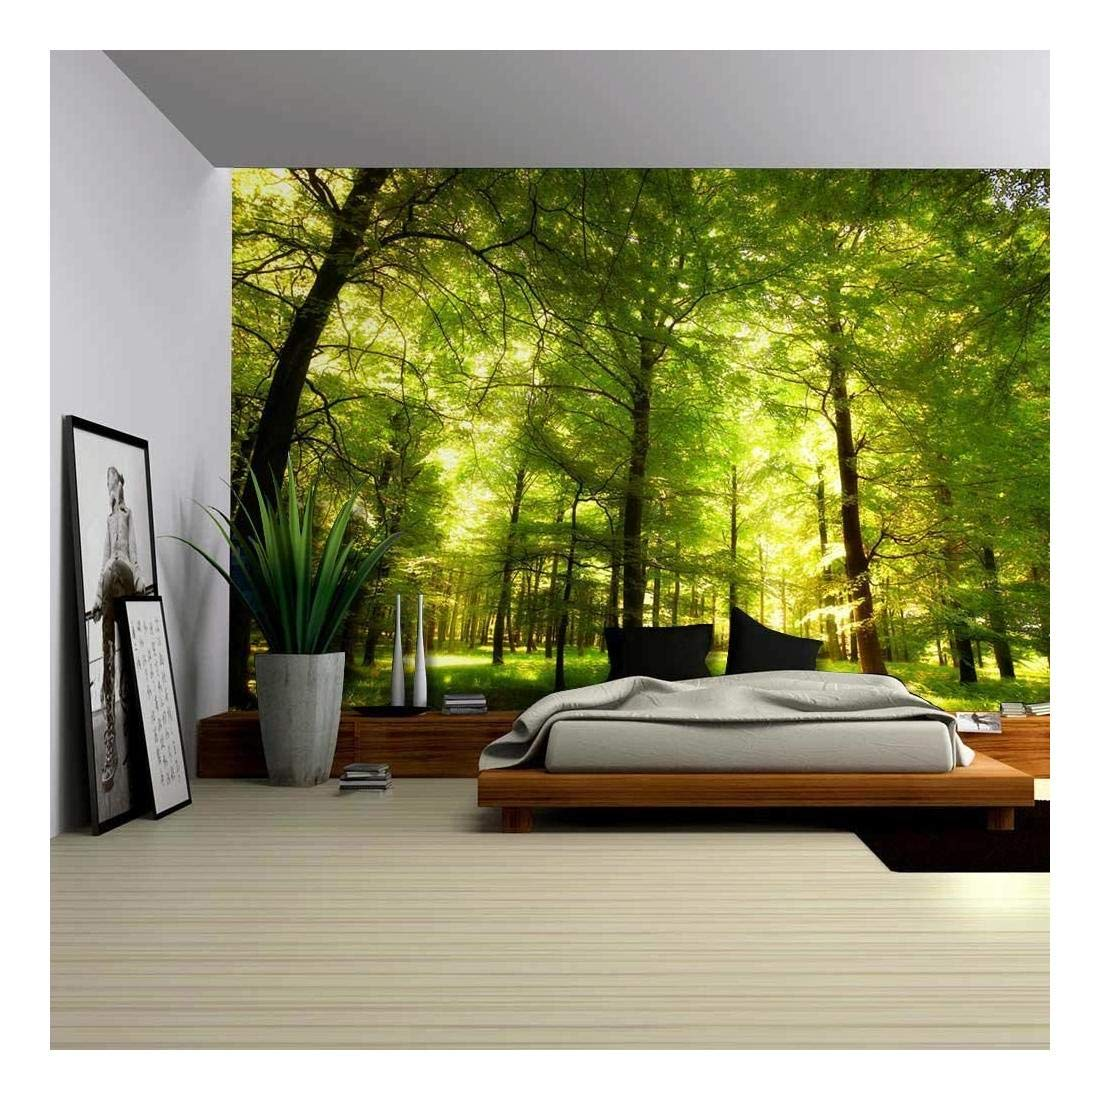 wall26 - Crowded Forest Mural - Wall Mural, Removable Sticker, Home Decor - 100x144 inches by wall26